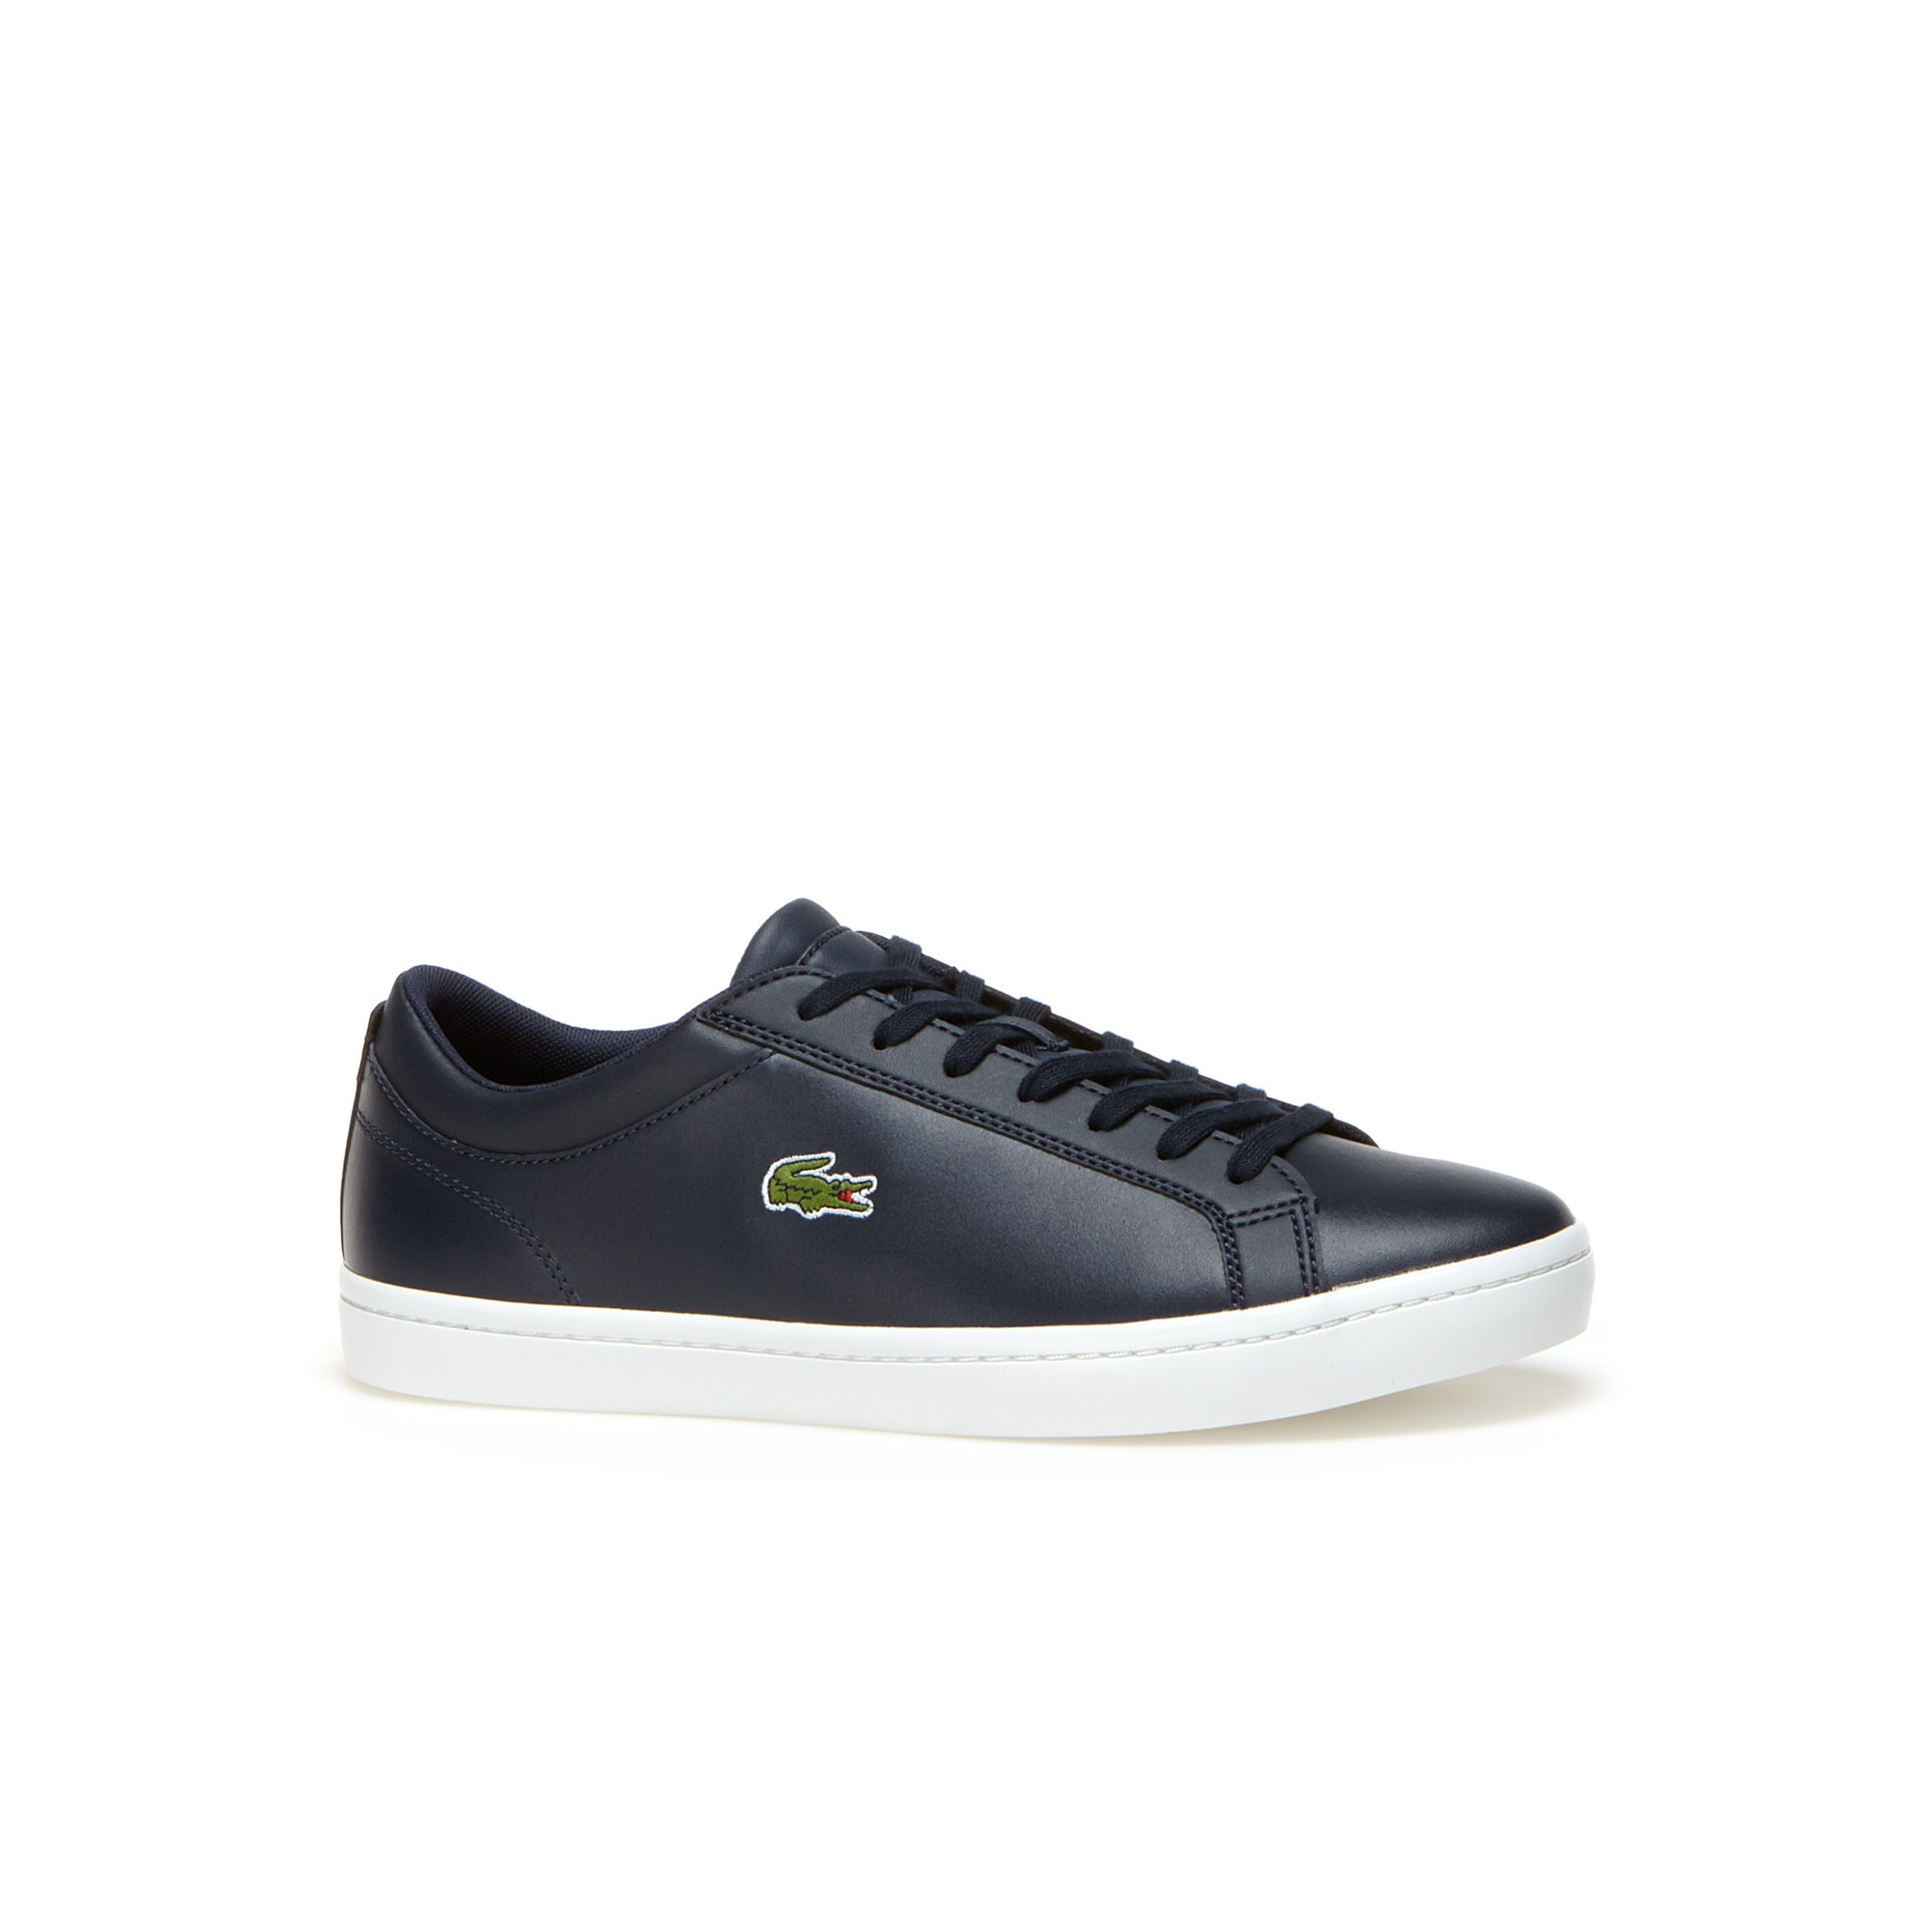 Men's Straightset Leather Trainers